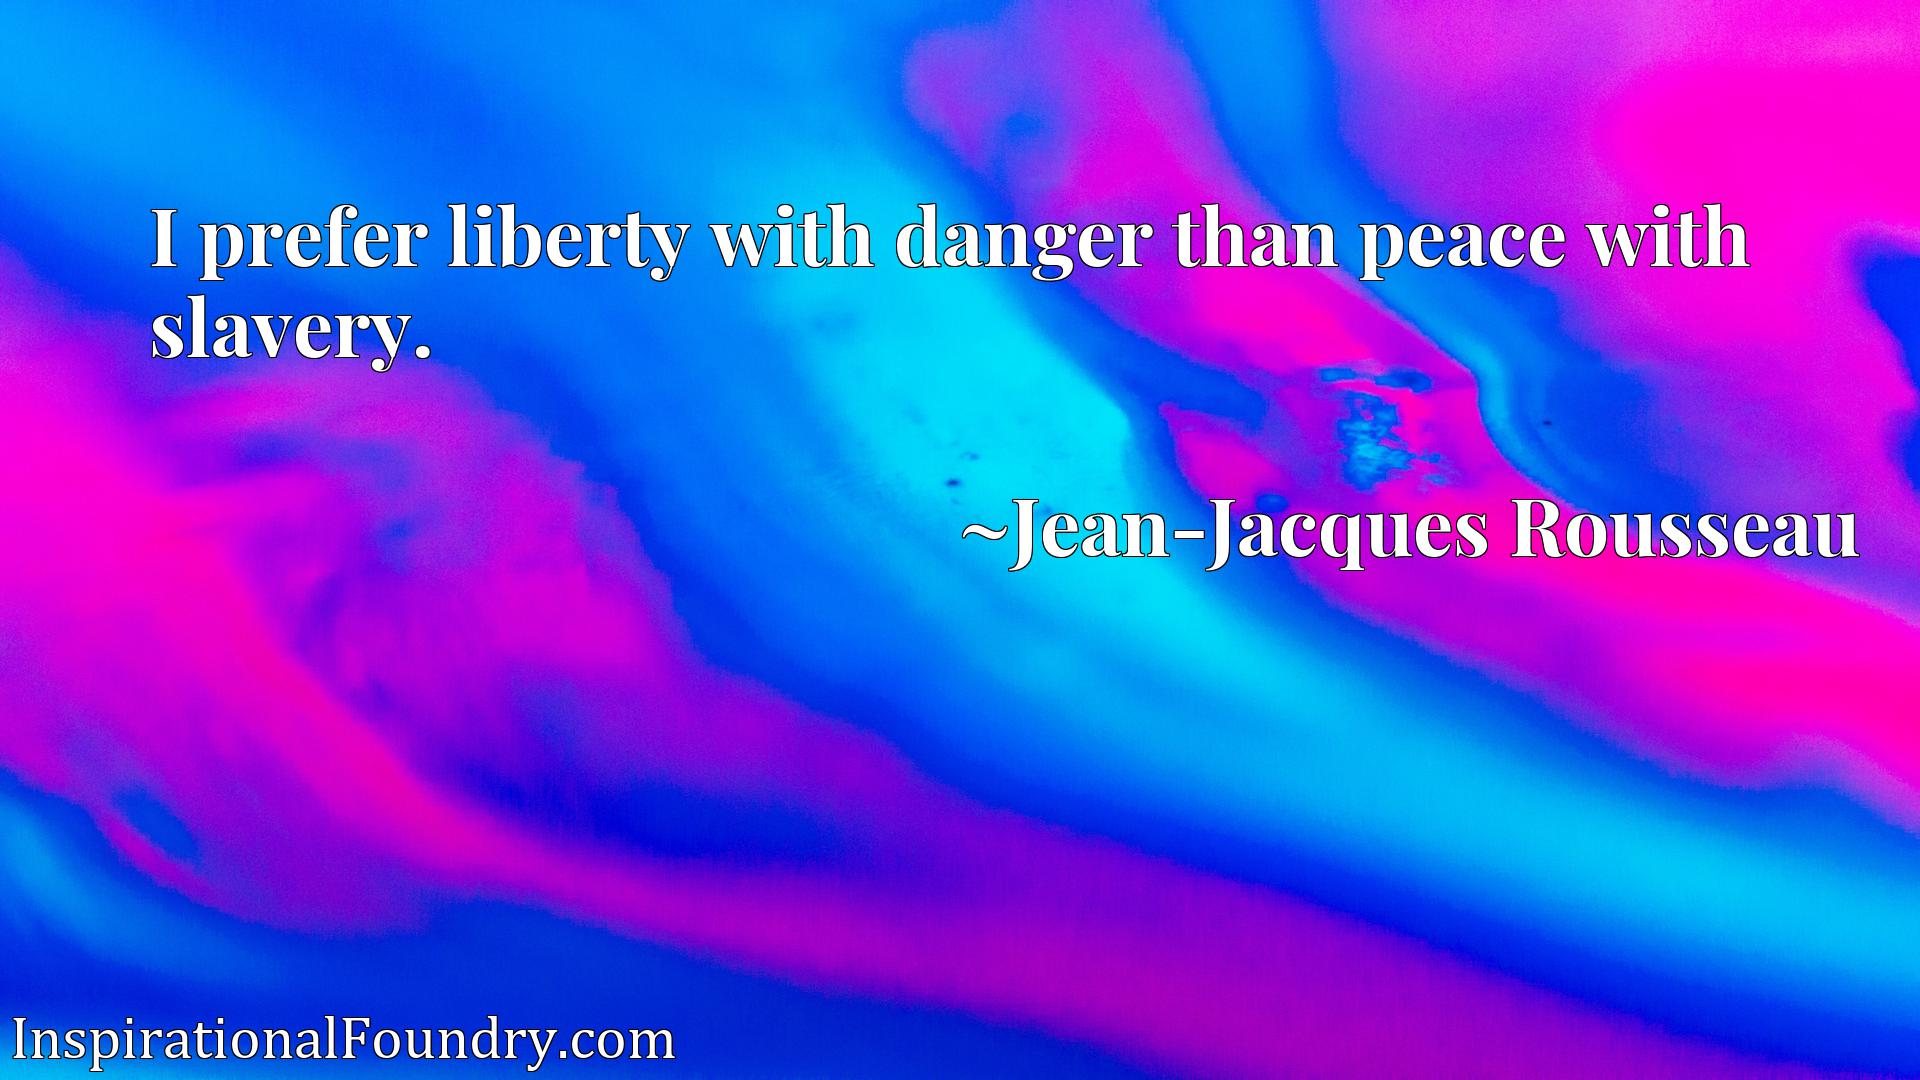 I prefer liberty with danger than peace with slavery.